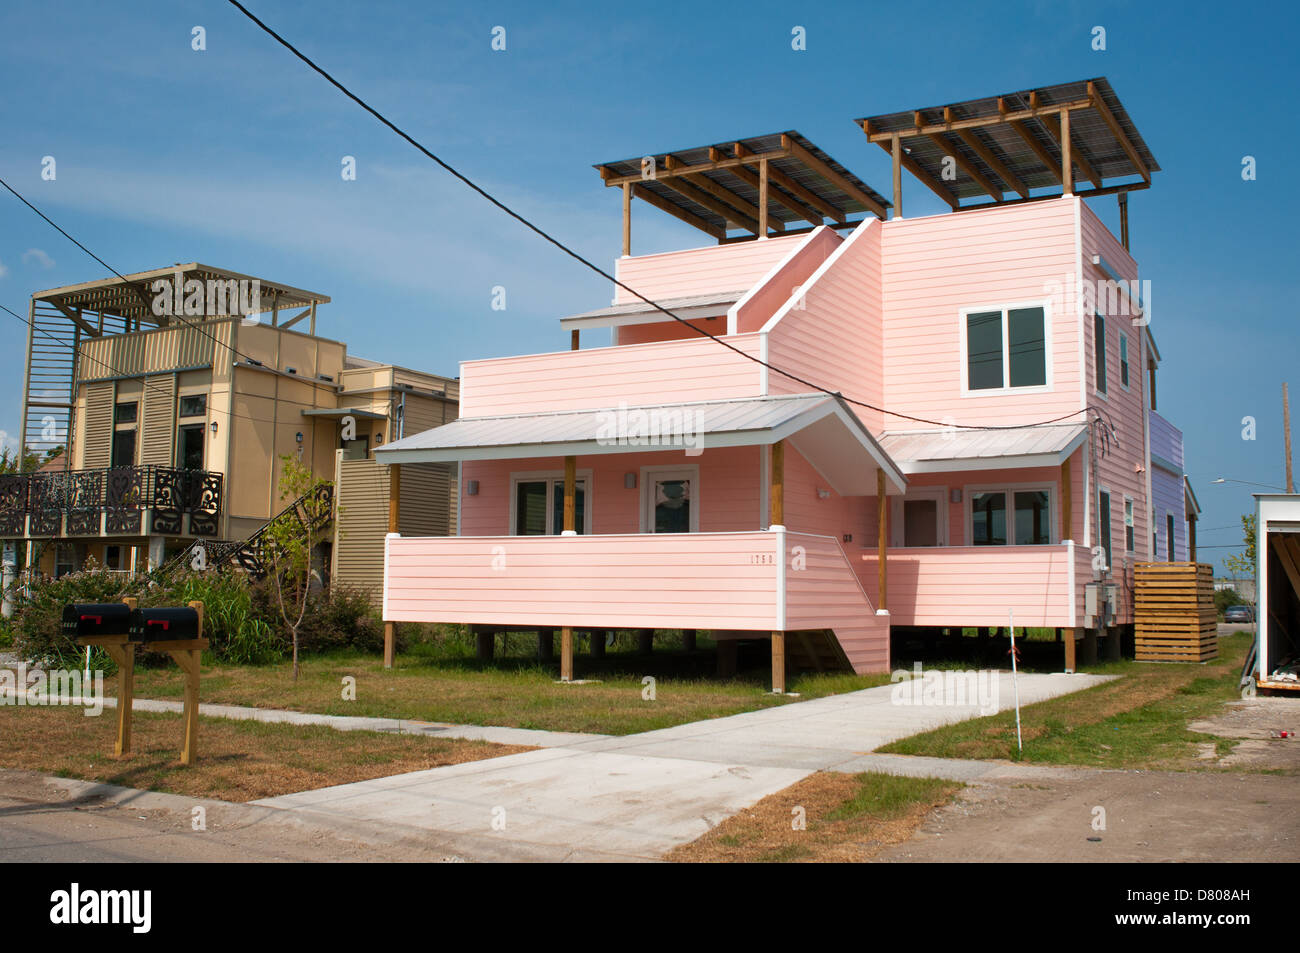 New energy efficient homes built in New Orleans, LA, after Hurricane Katrina as part of the 'Make It Right' - Stock Image